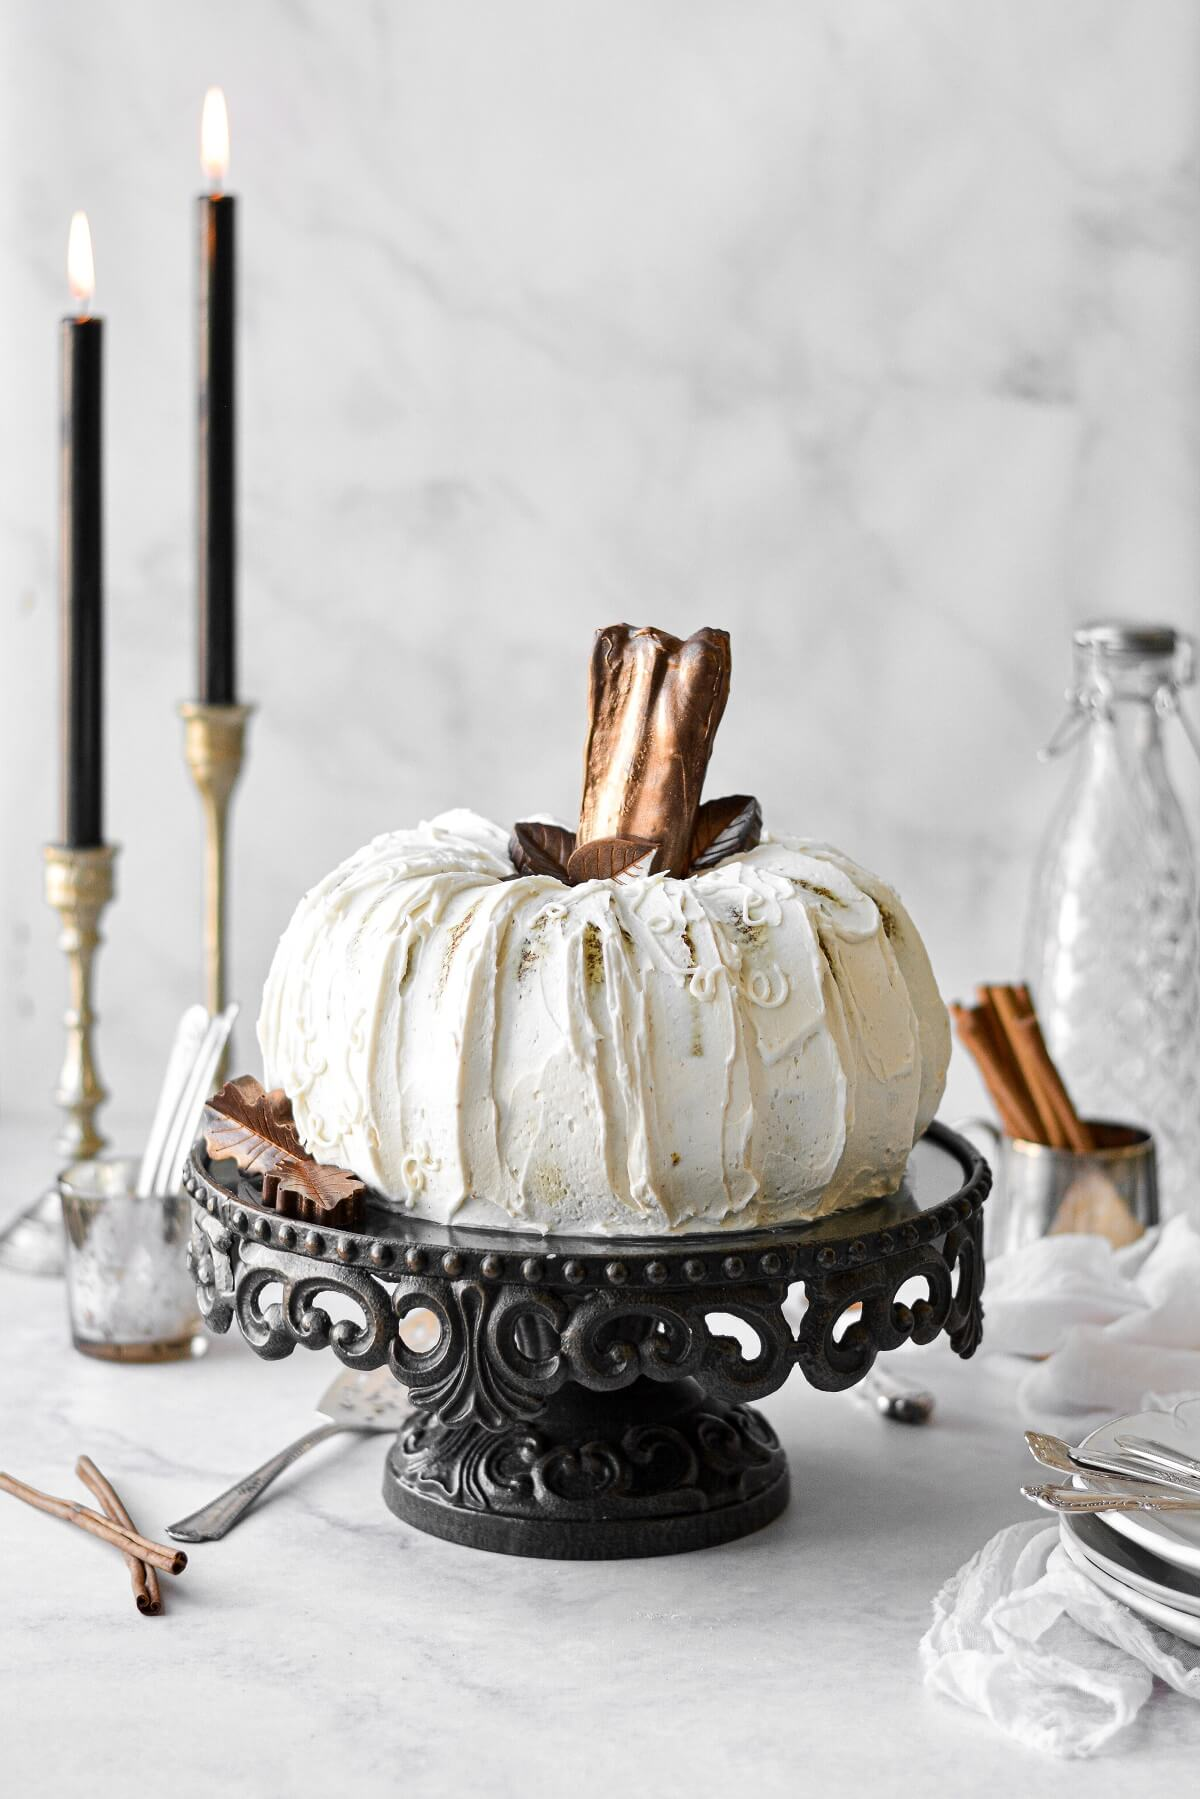 A white pumpkin cake with chocolate leaves and chocolate covered pretzel stem.